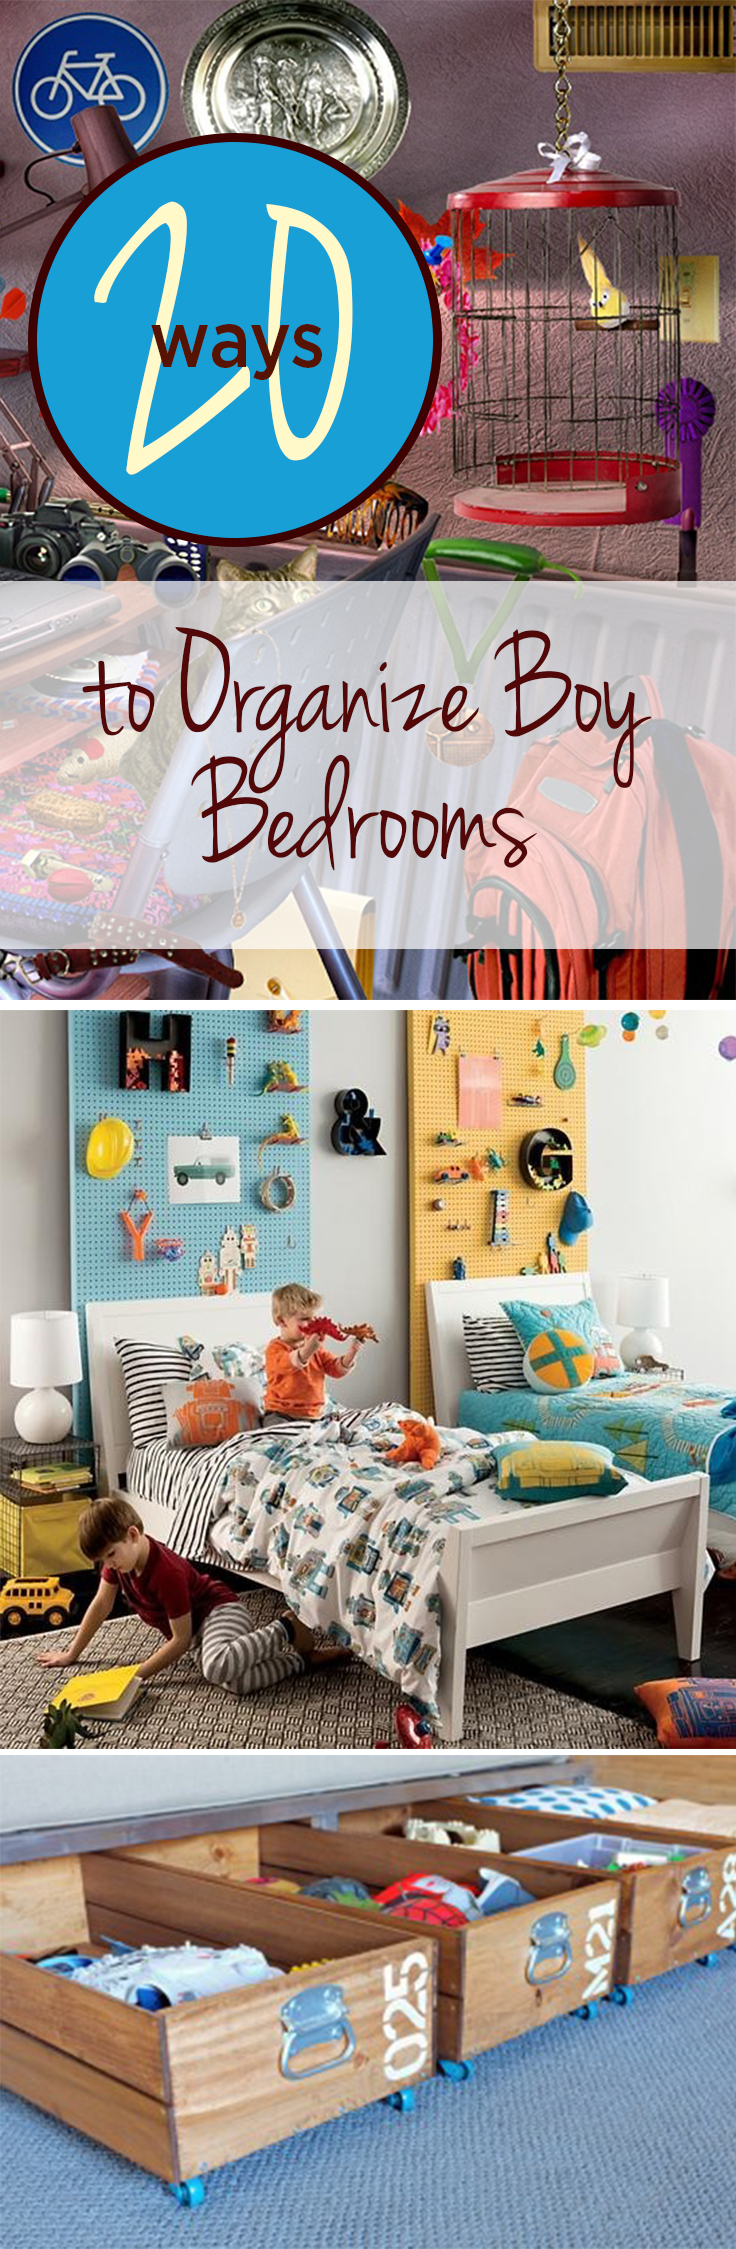 organize, organized bedrooms, bedrooms, popular pin, cleaning, cleaning tips, organization.